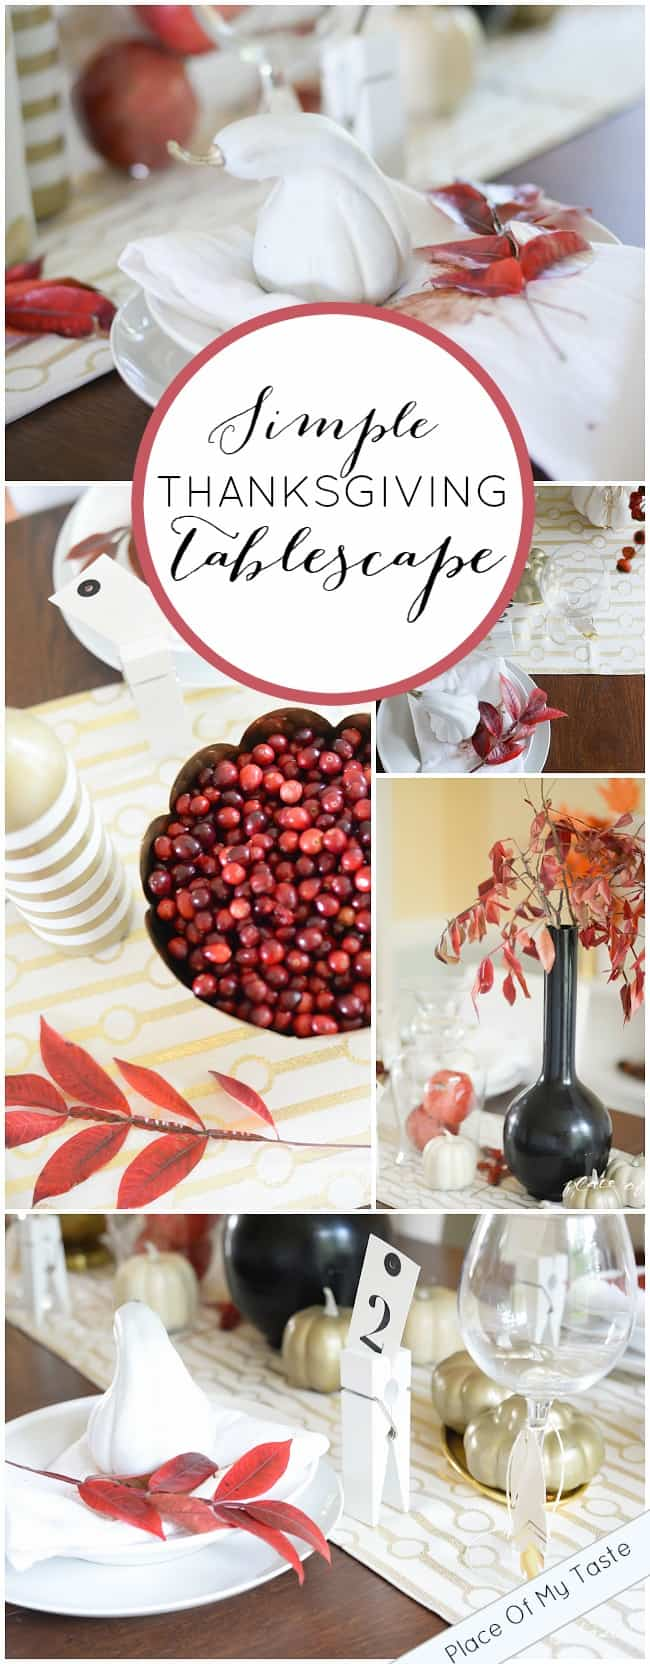 Simple Thanksgiving Tablescape-Placeofmytaste.com